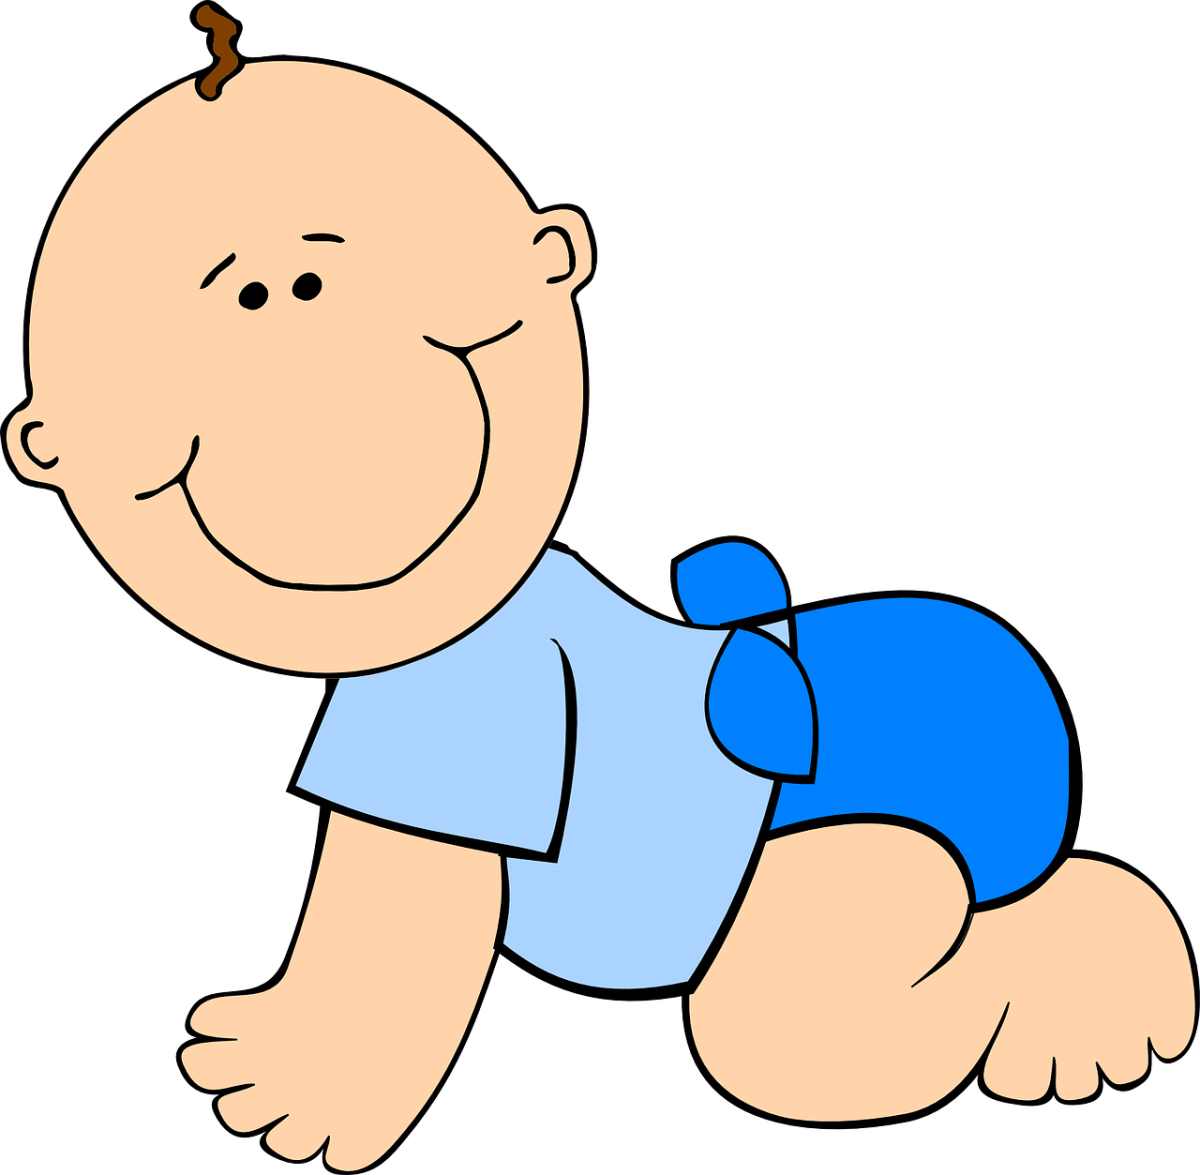 Baby wearing a diaper